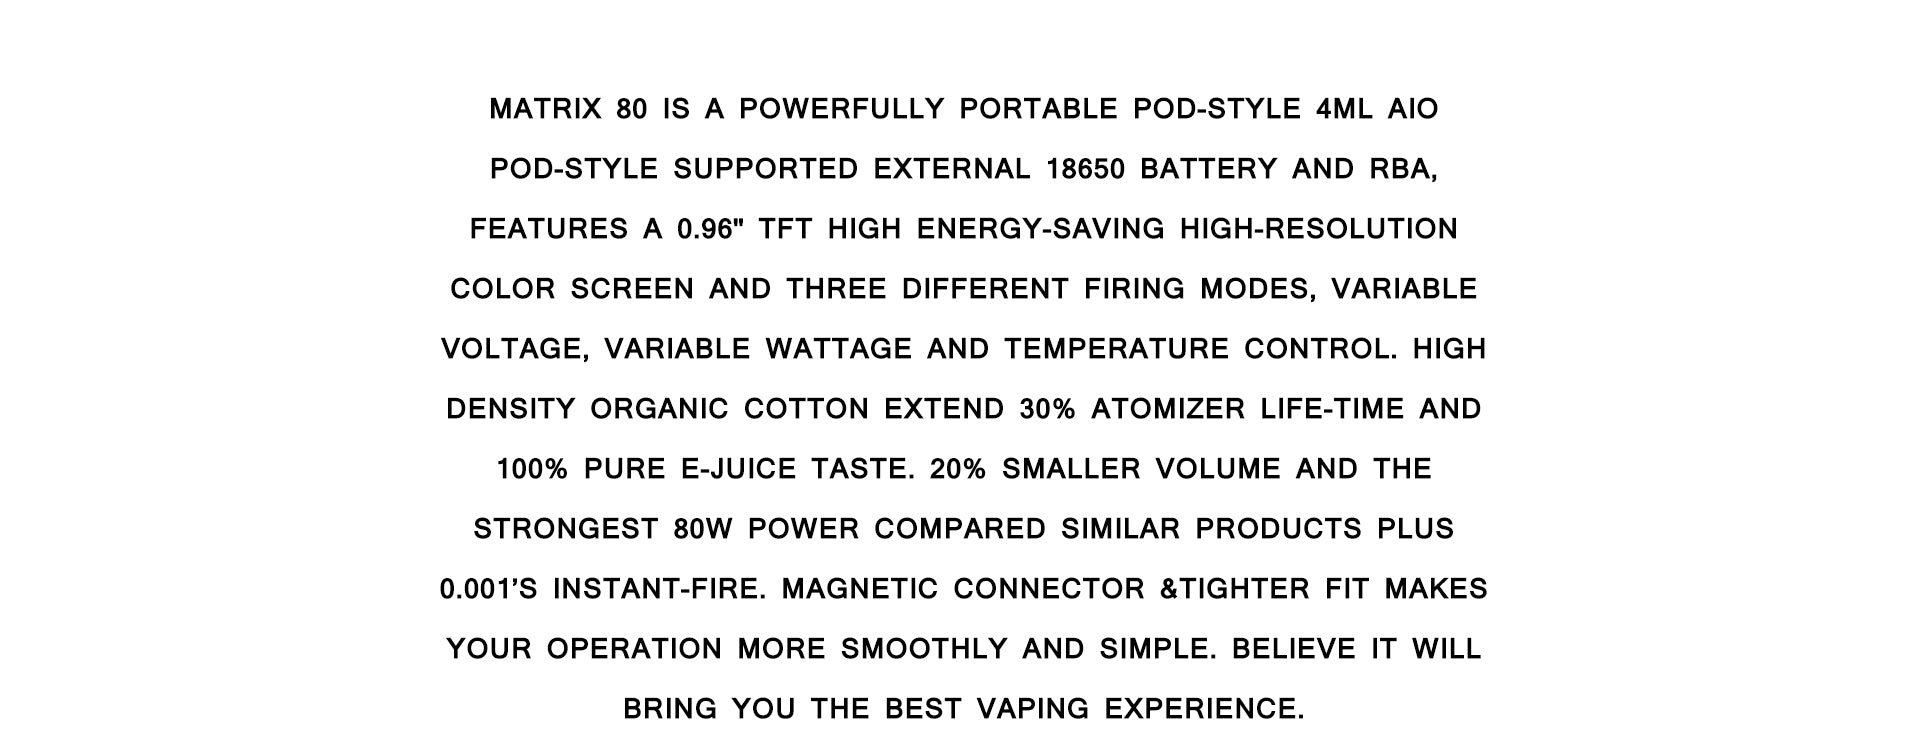 https://www.aaavape.com/products/aaavape-matrix-80w-pod-mod-kit